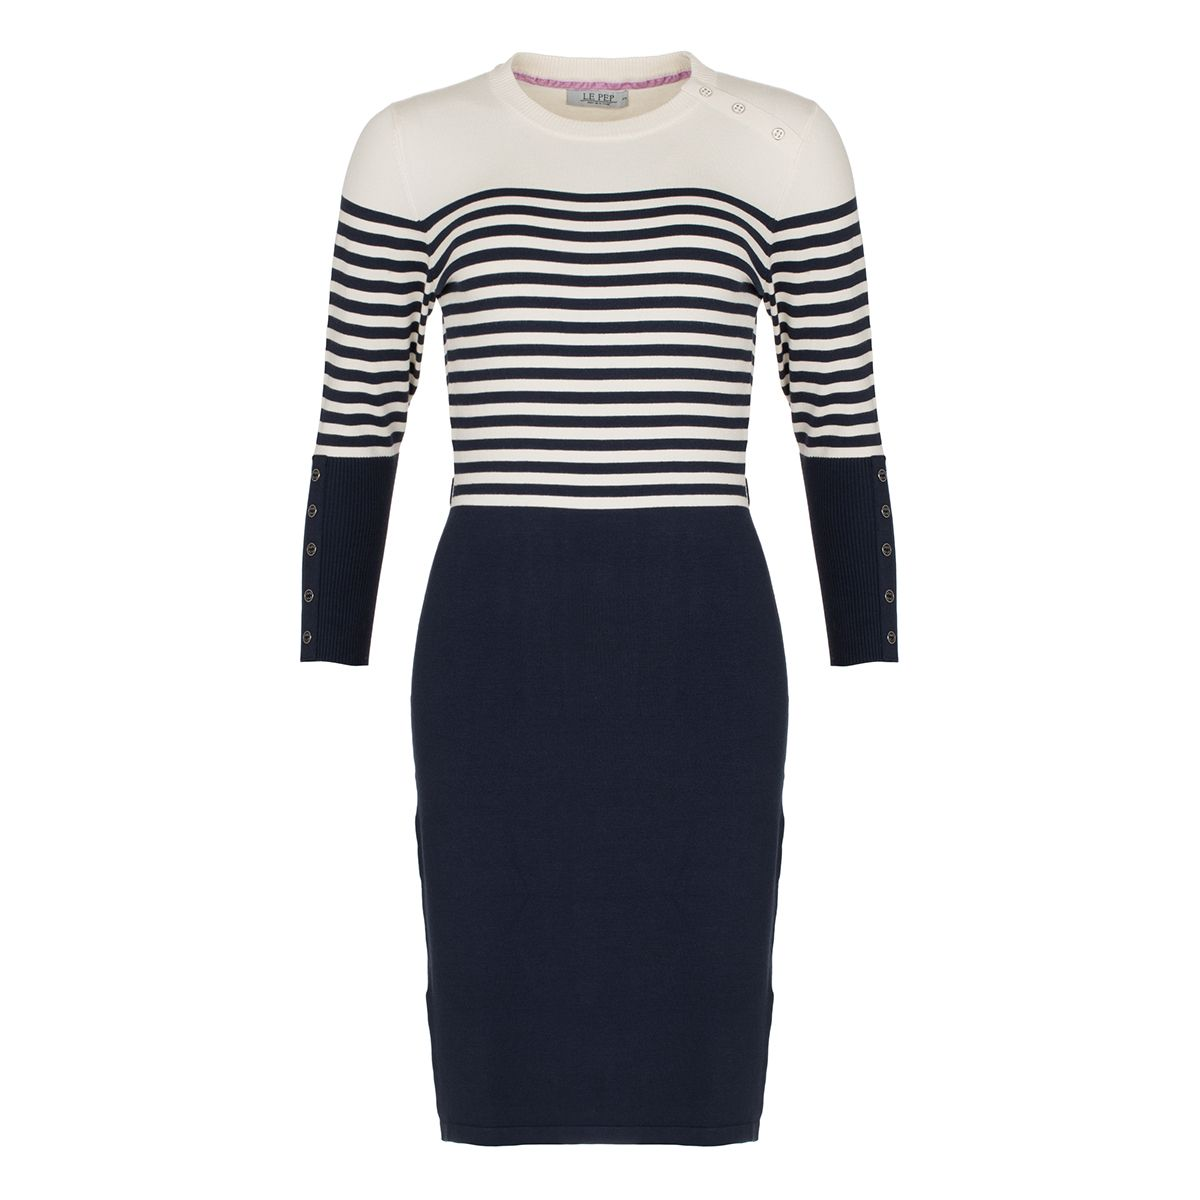 Dress Adelle Navy Stripe